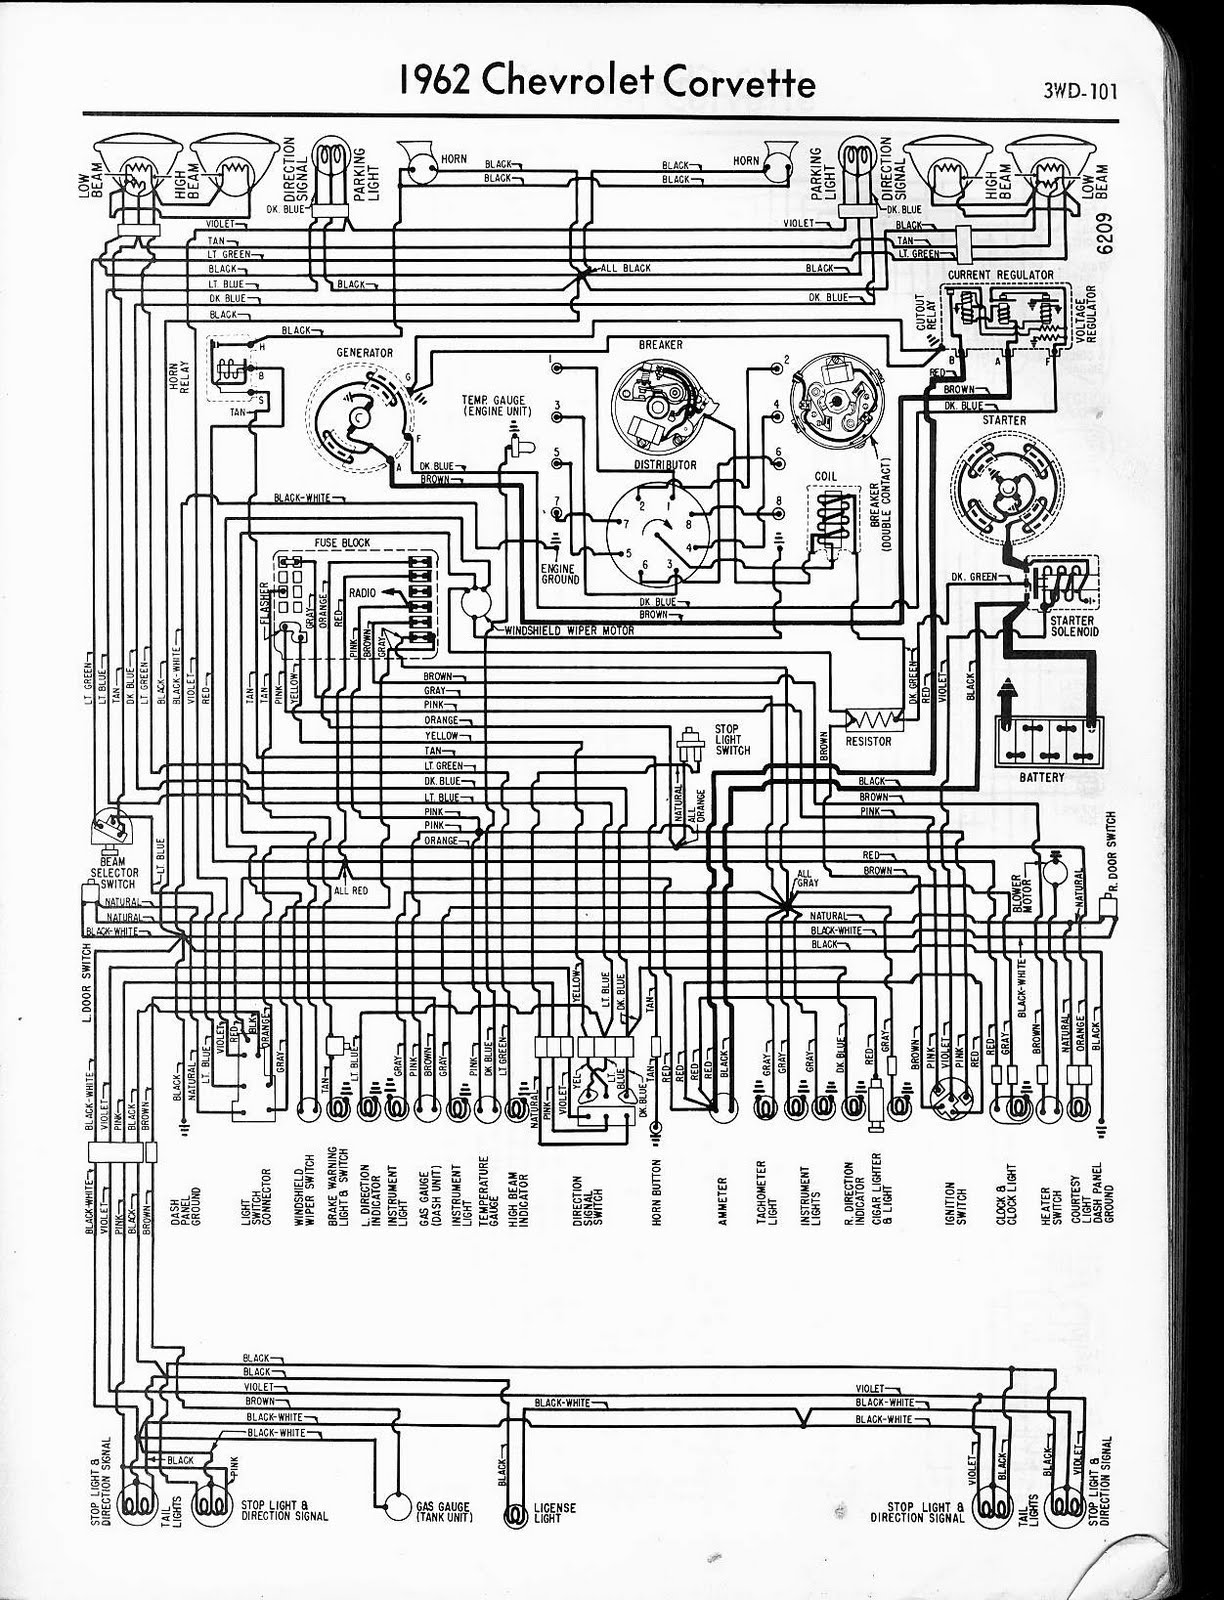 free auto wiring diagram 1962 chevrolet corvette wiring diagram rh autowiringdiagram blogspot com 1962 chevy wiring diagram 1962 chevy pickup wiring diagram